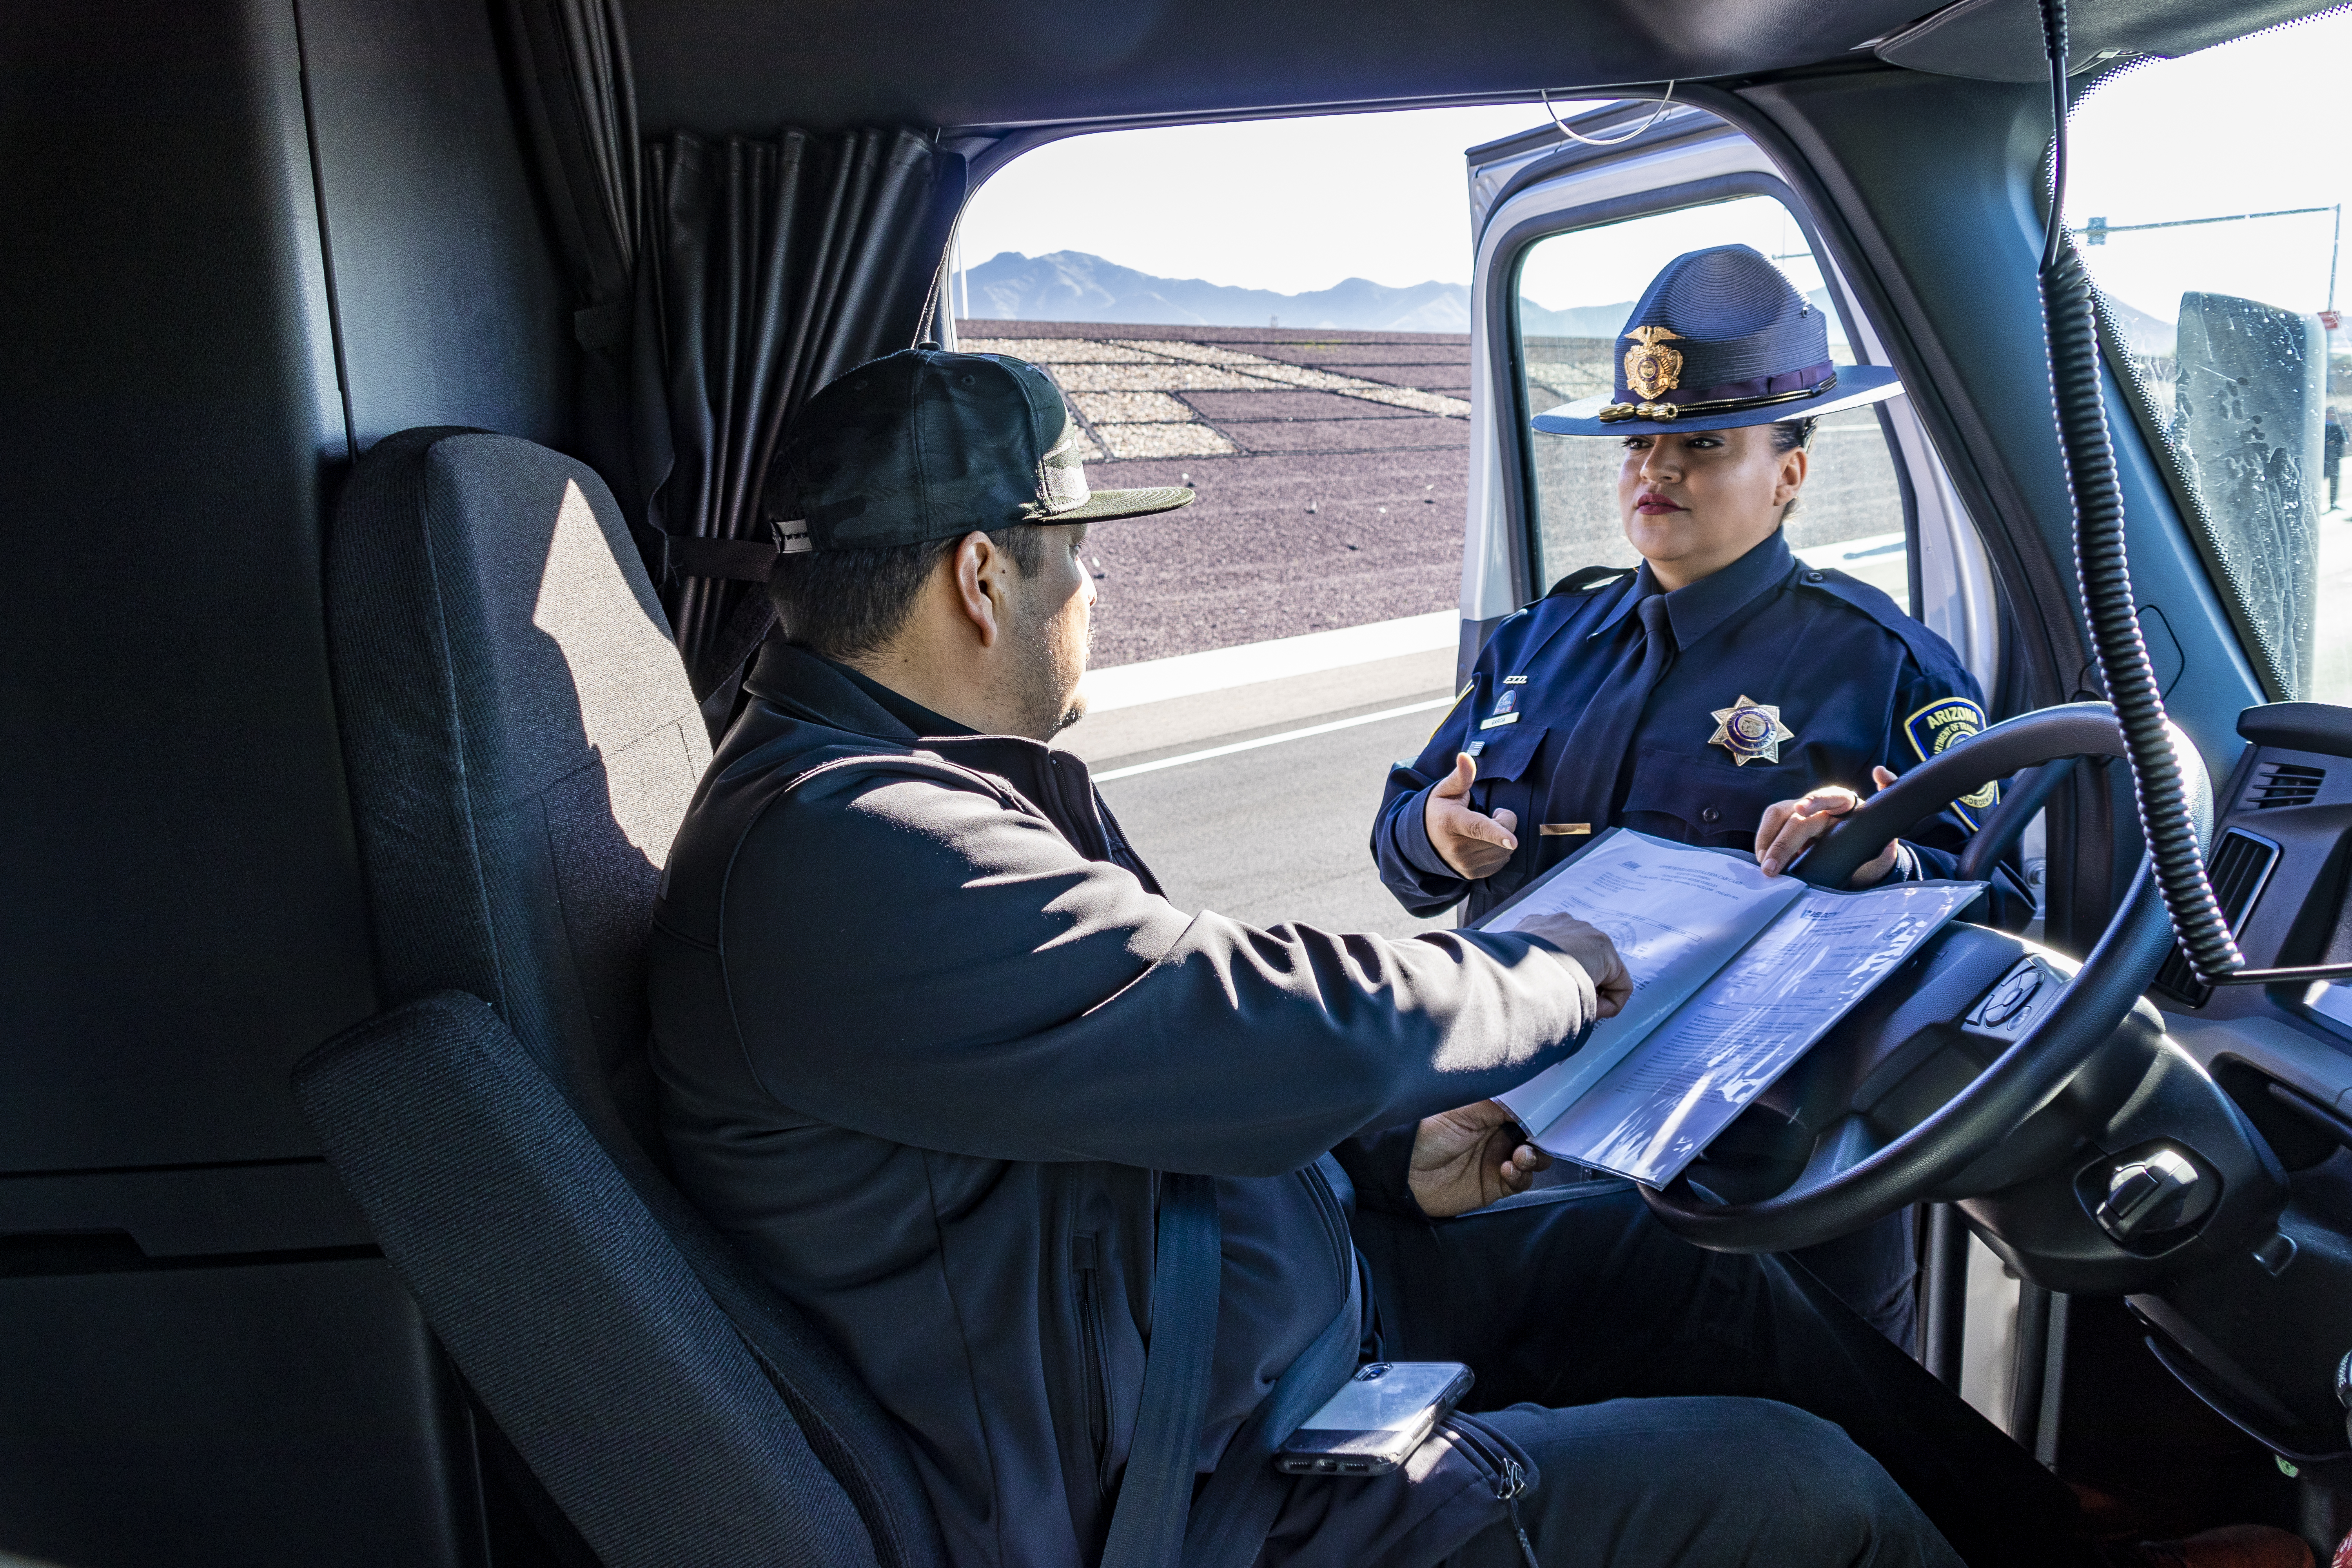 ECD Officer and Driver